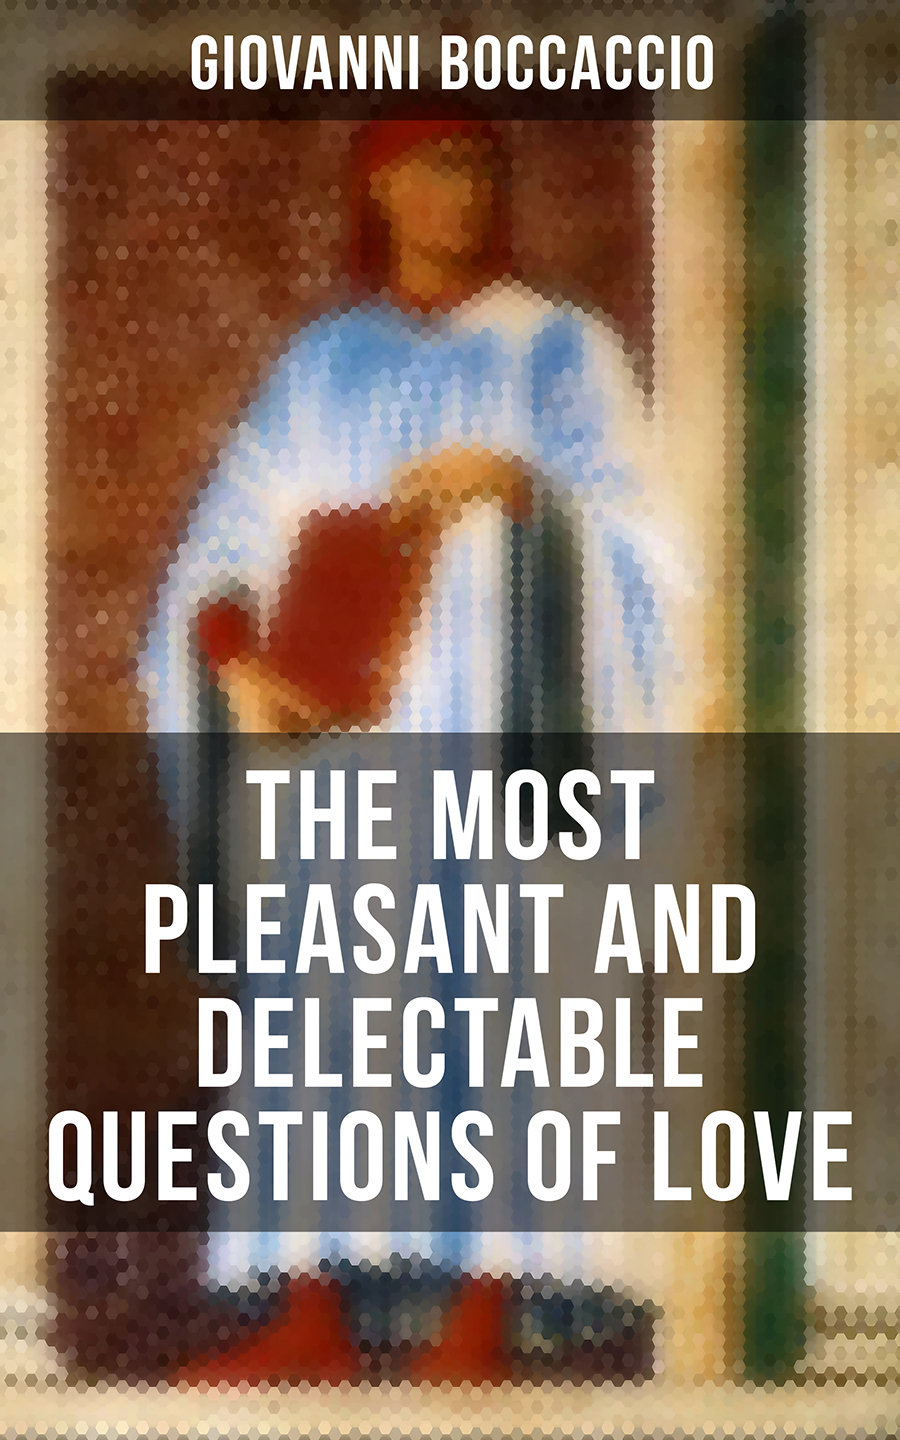 Giovanni Boccaccio Giovanni Boccaccio: The Most Pleasant and Delectable Questions of Love